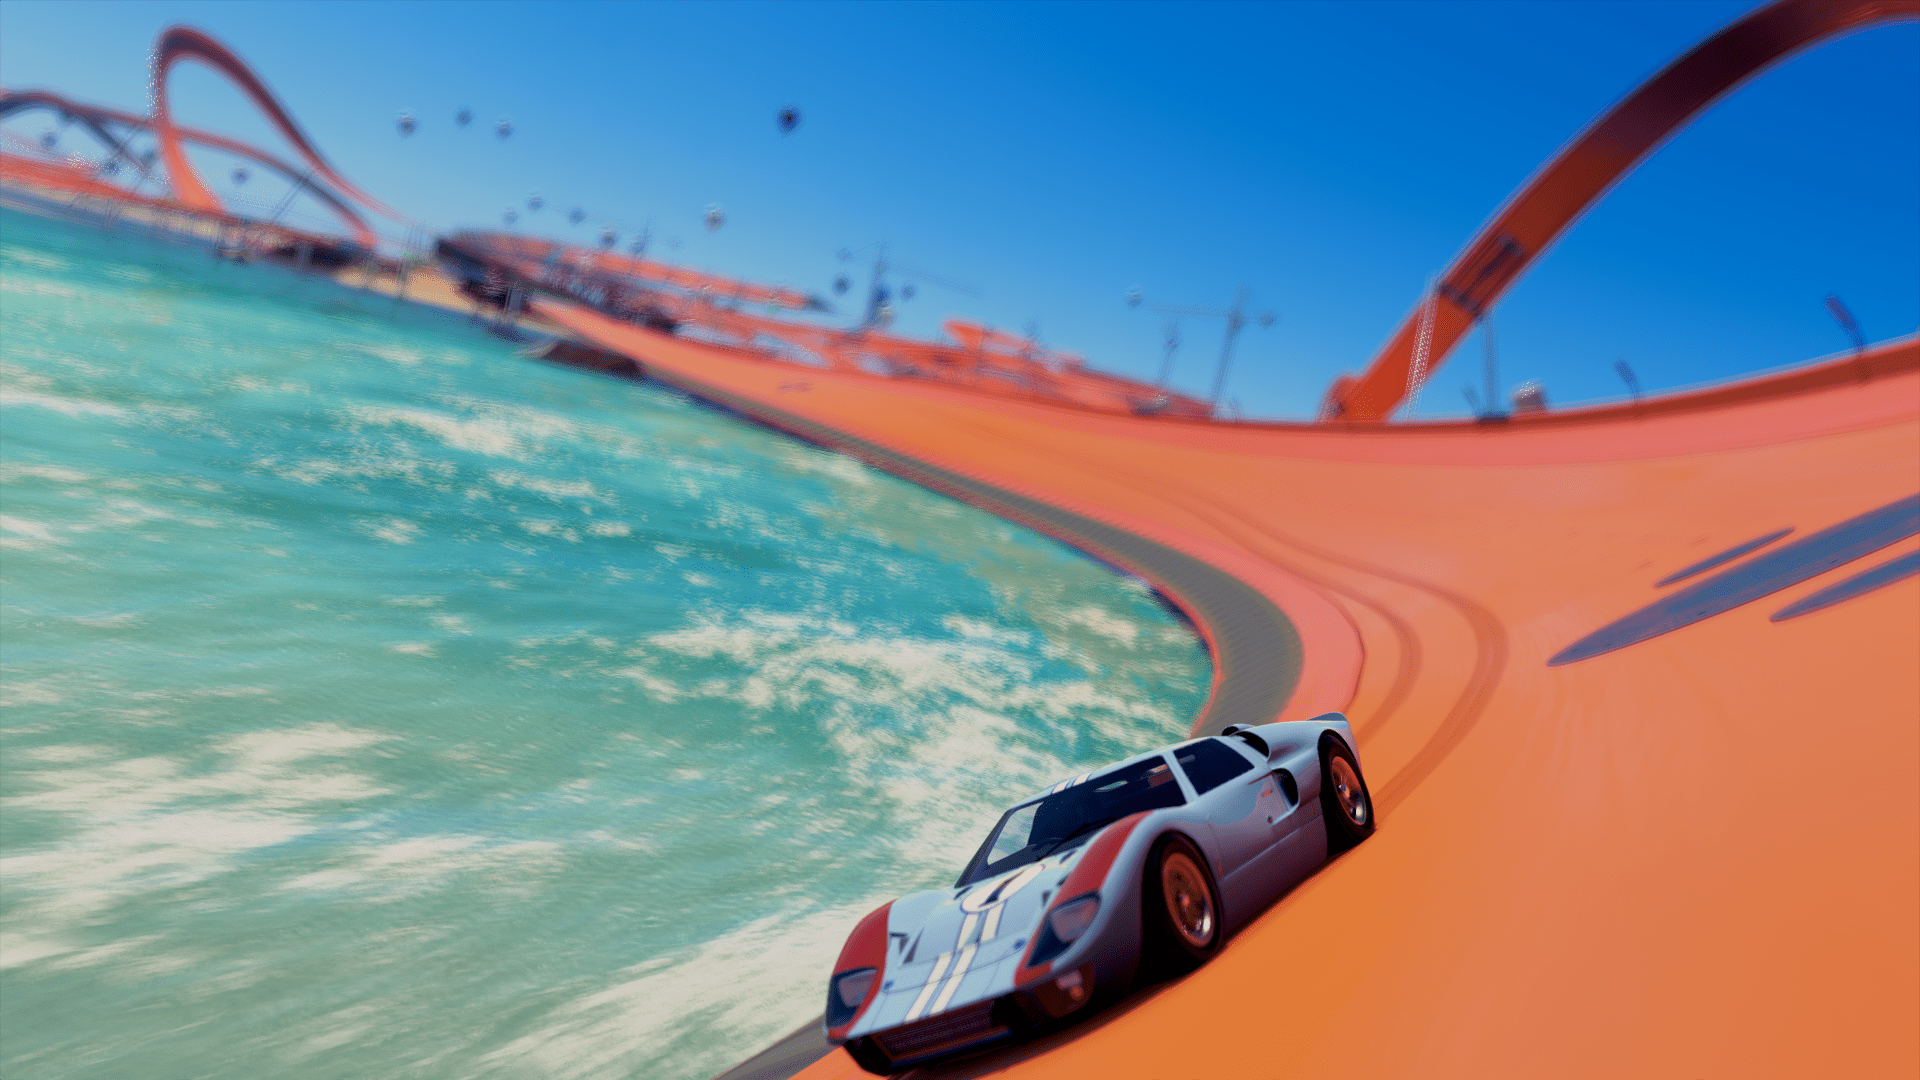 Forza Horizon 3 Screenshot 2020.08.11 - 21.15.40.53.png